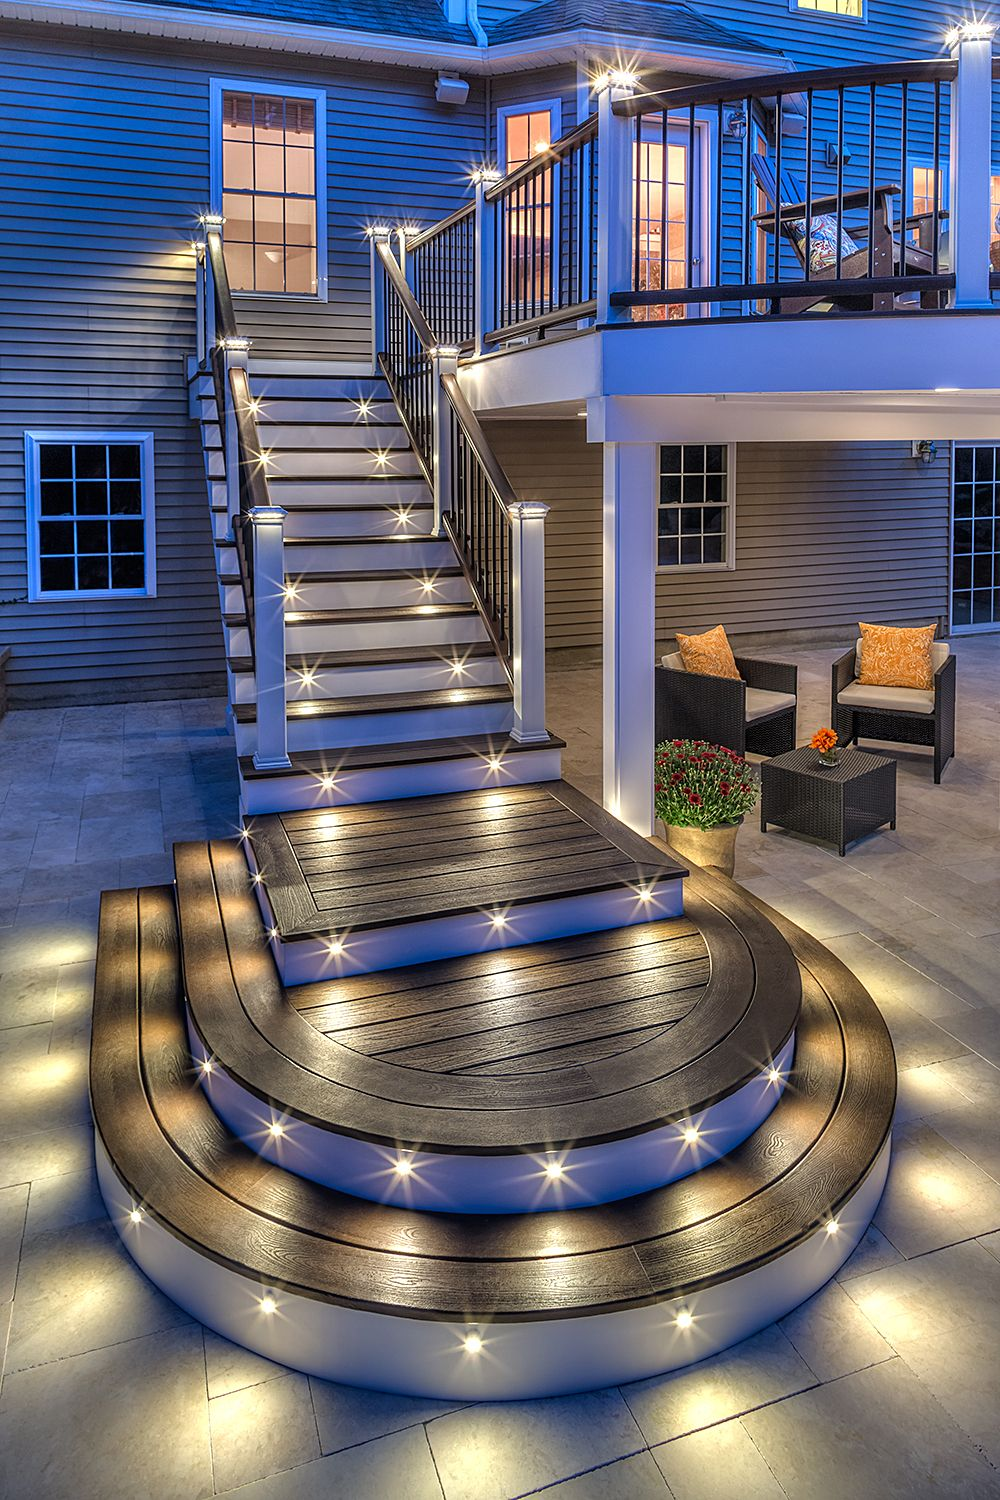 Best Professional Building Services Curved Stairs 603 898 2977 400 x 300